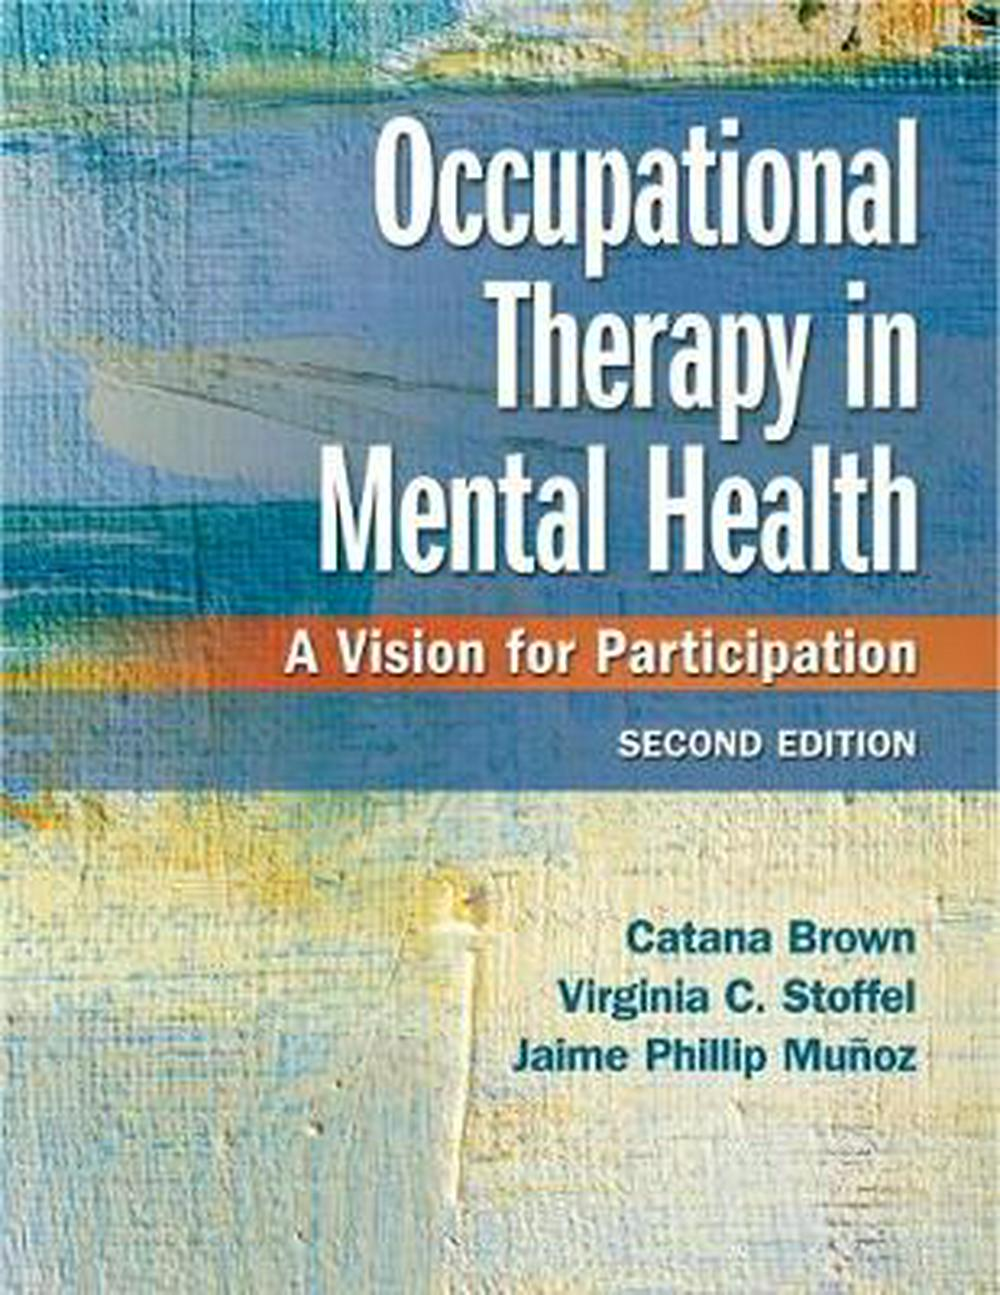 Occupational Therapy in Mental Health: A Vision for Participation